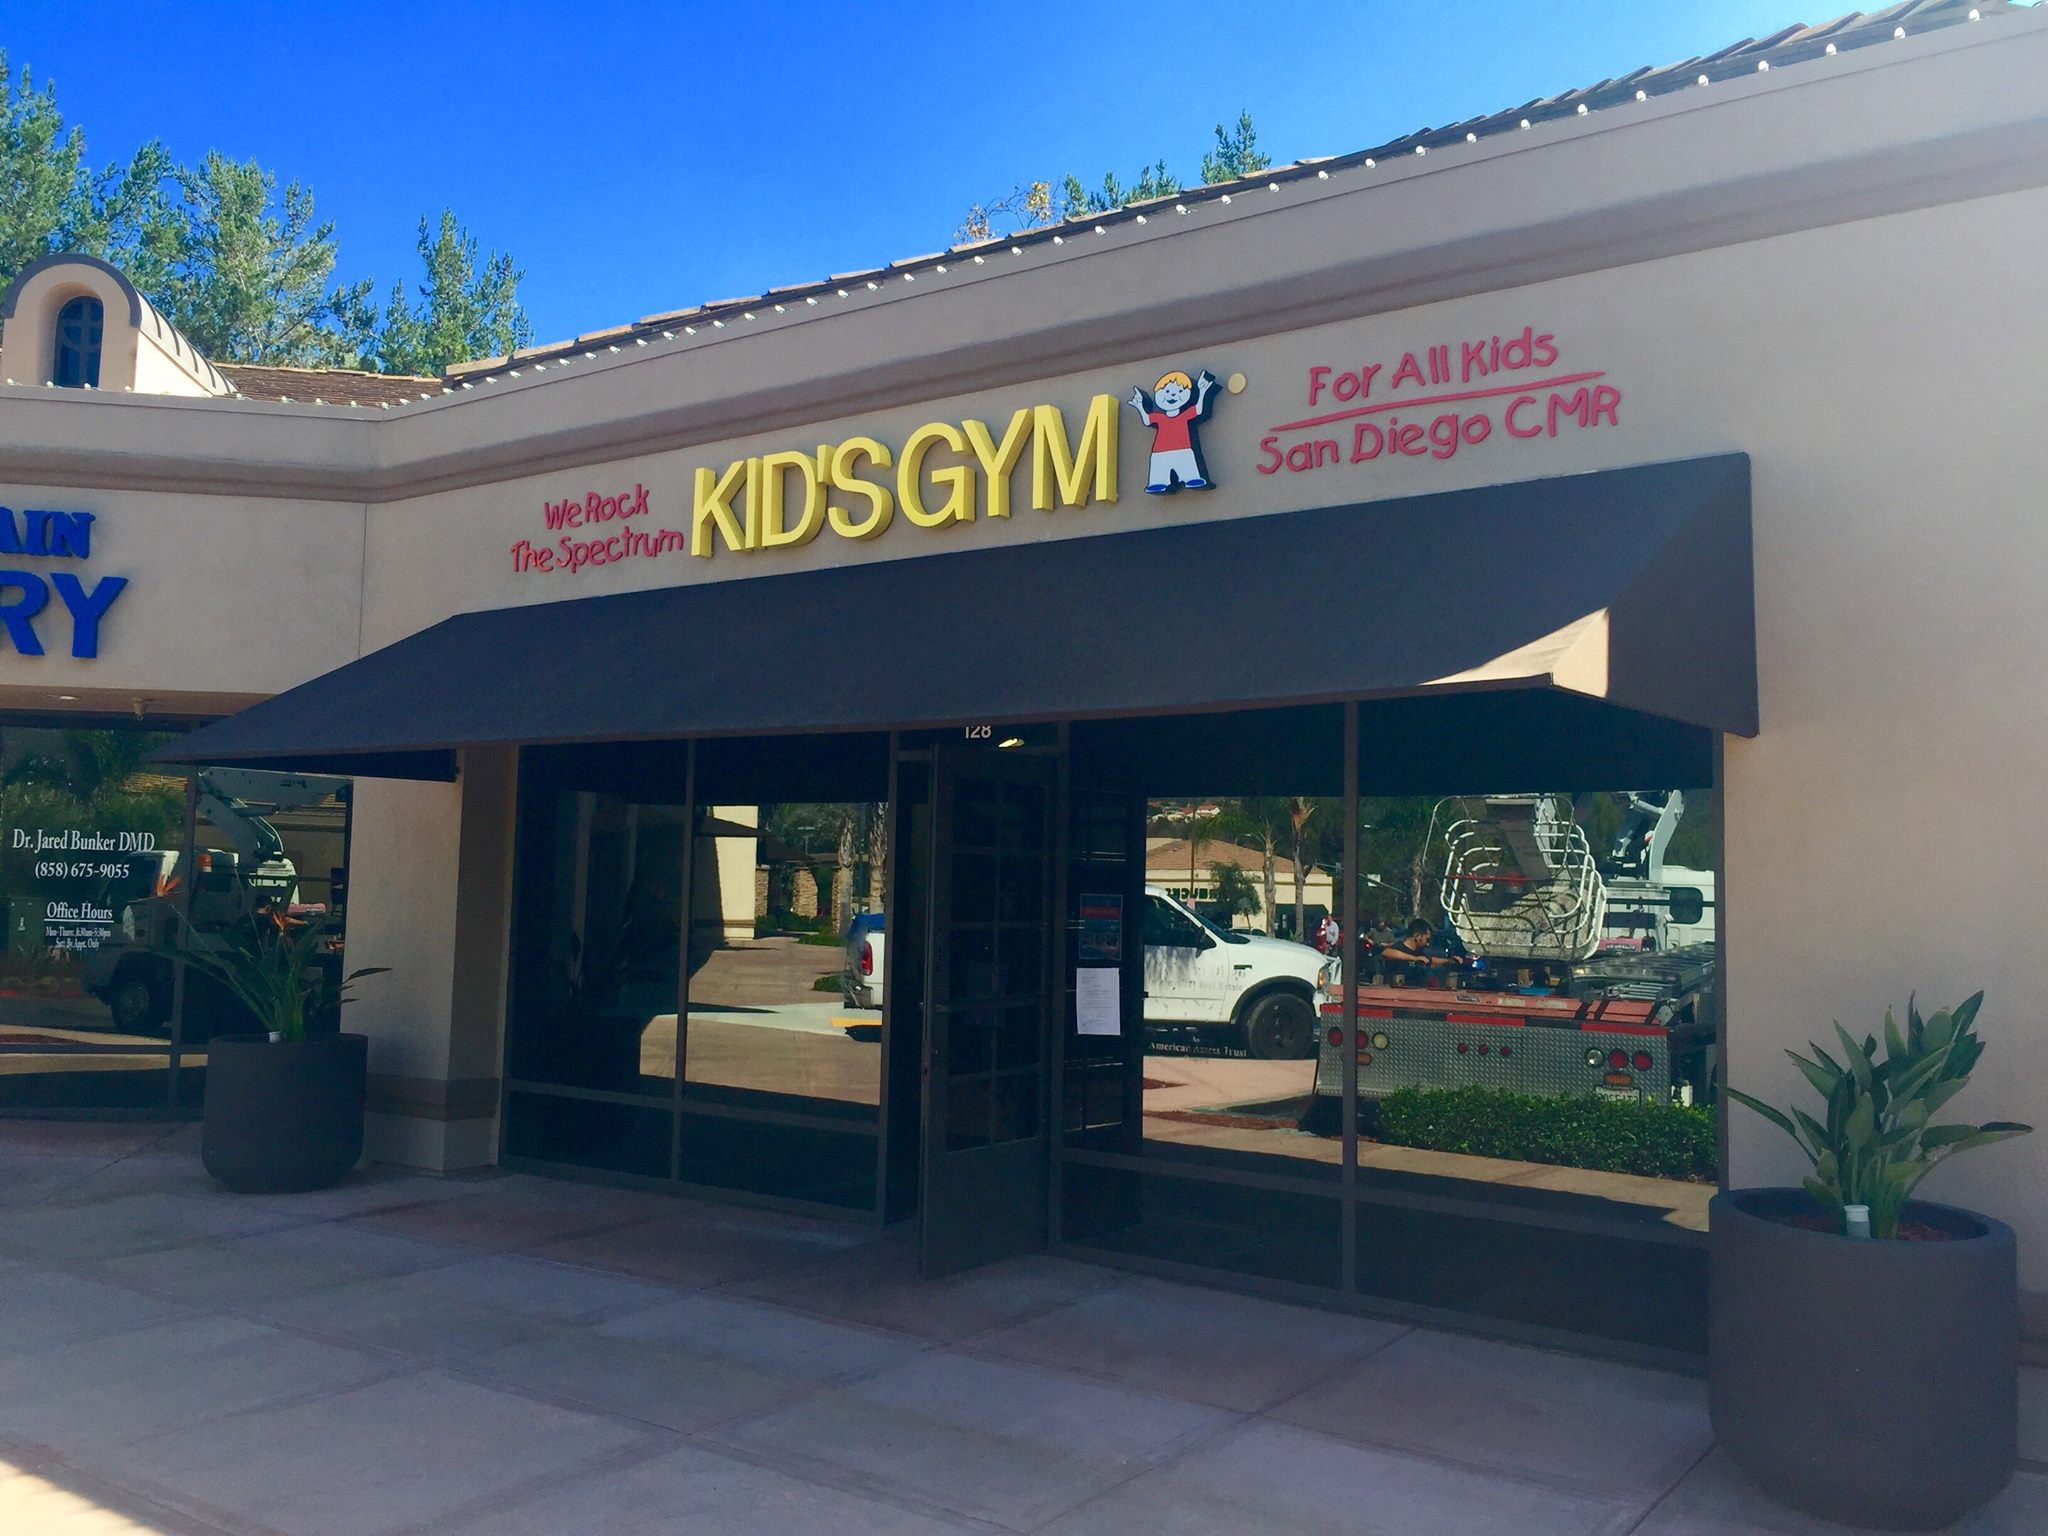 We Rock the Spectrum Kid's Gym - San Diego, CMR logo